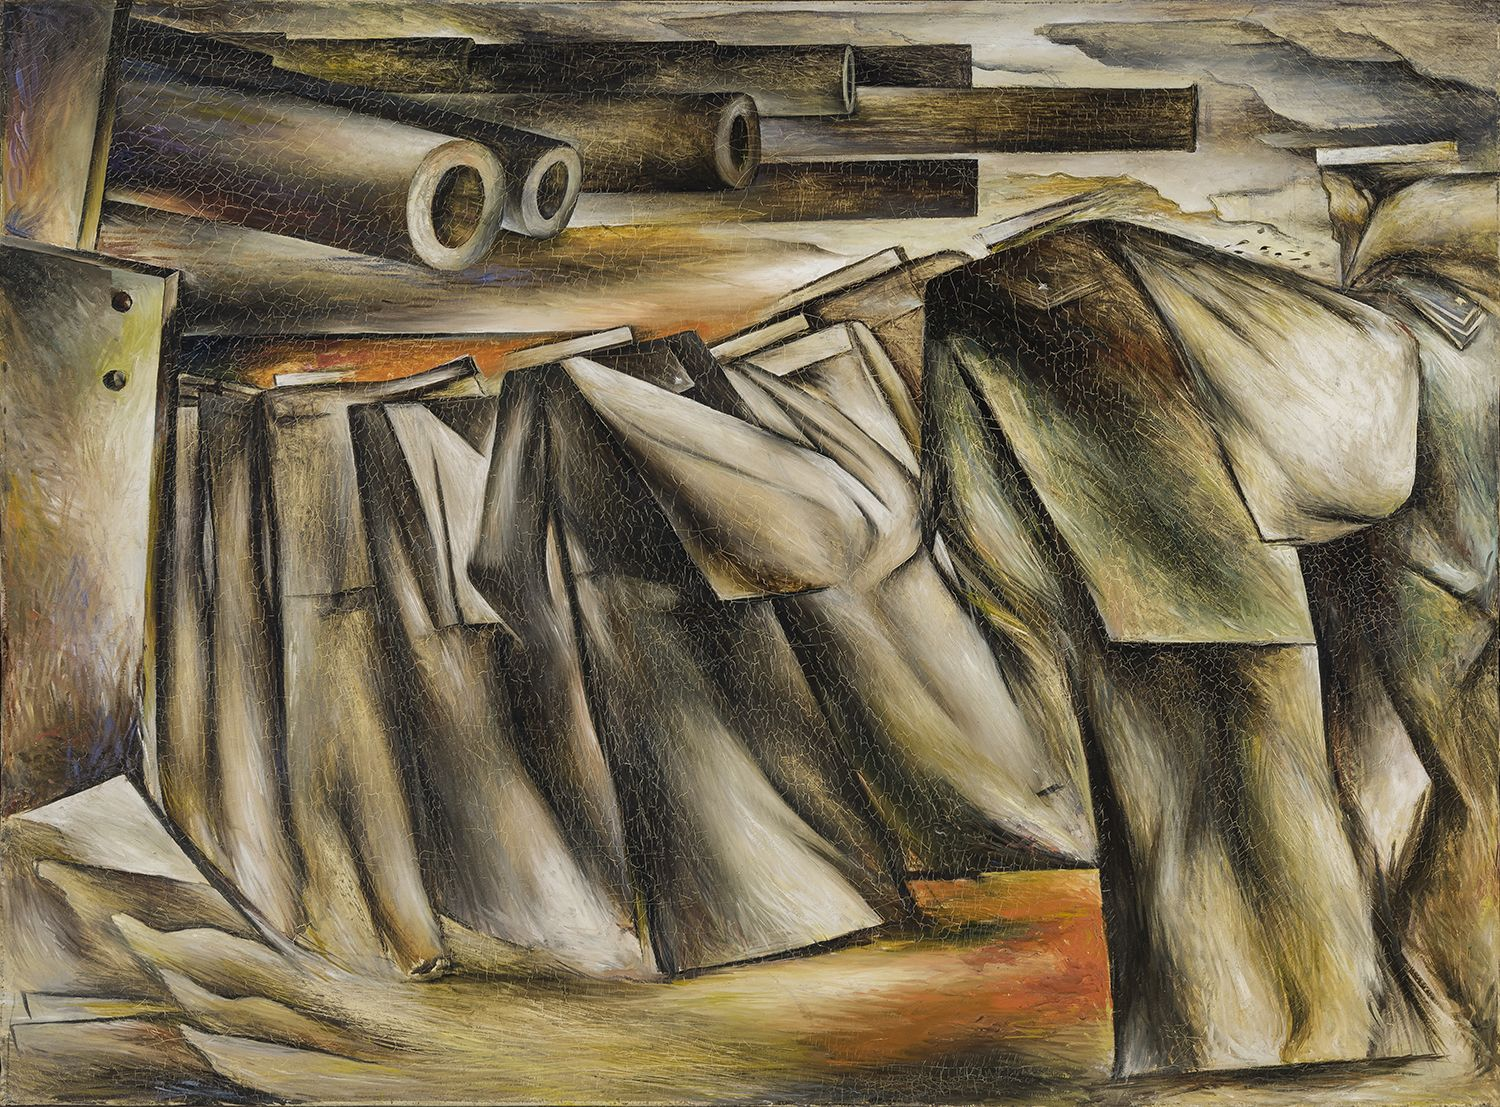 Embarkation, 1938, Oil on canvas, 36 x 44 3/8 in.